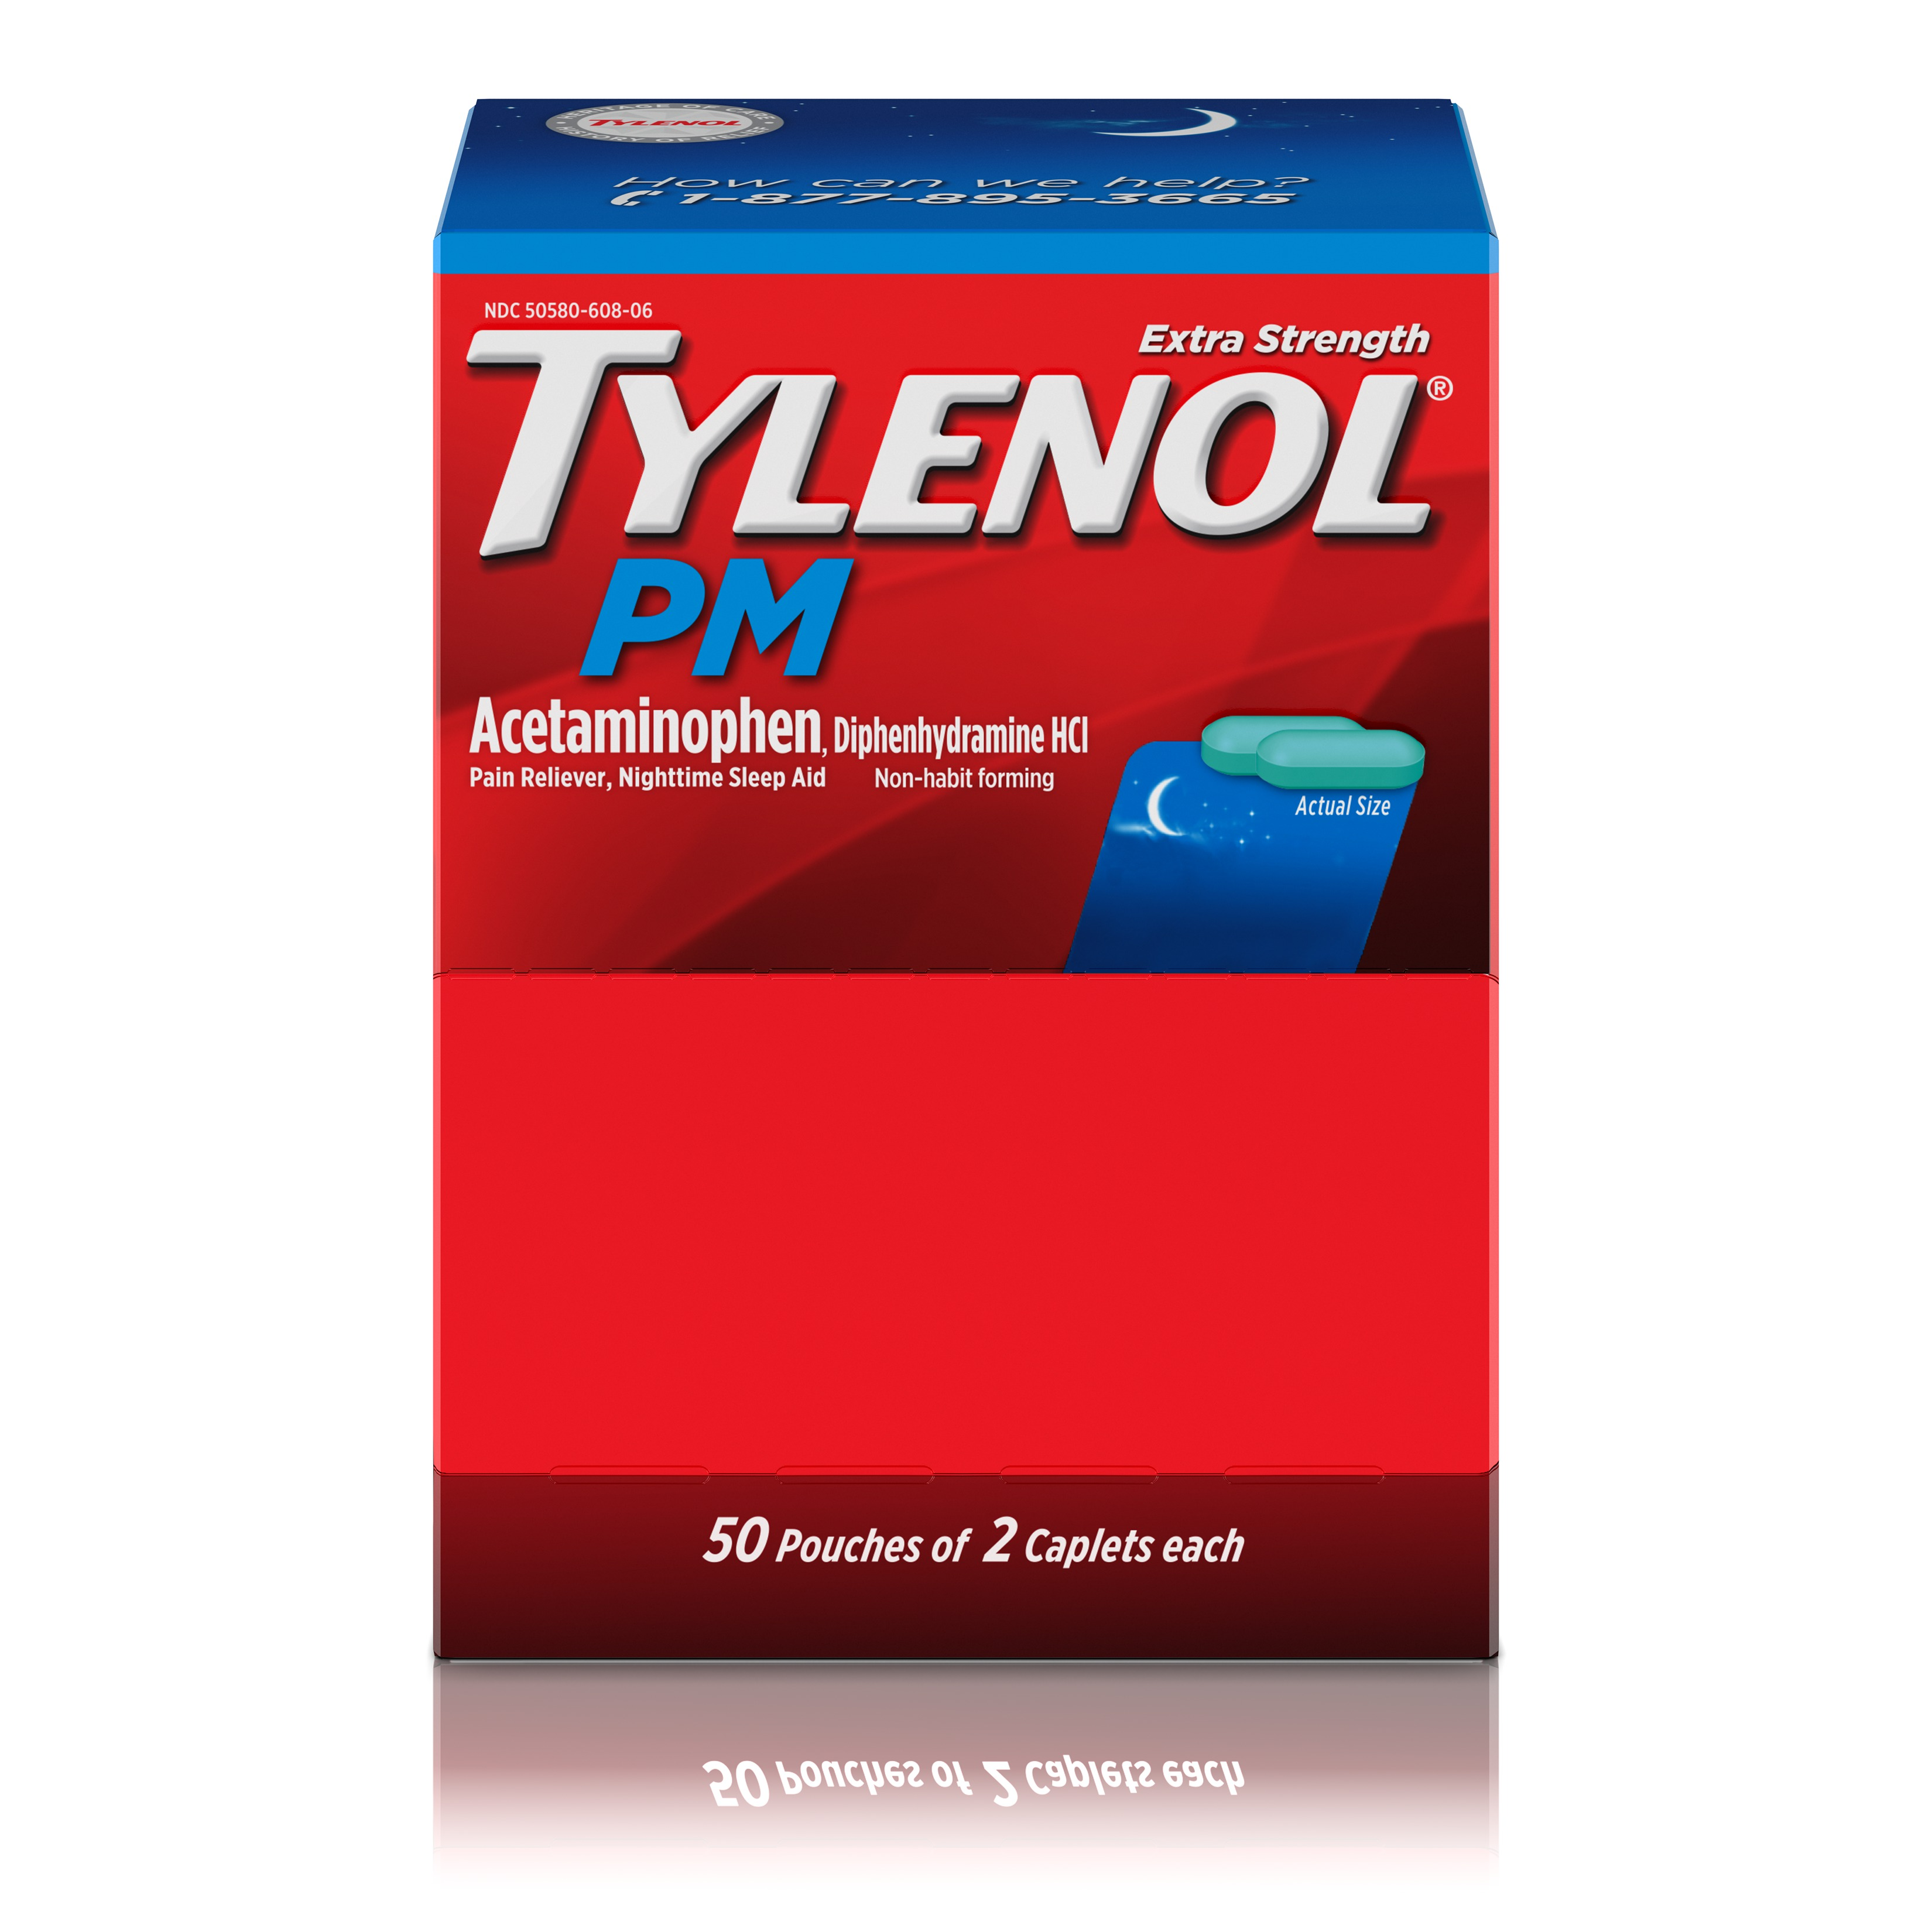 Tylenol PM Extra Strength Pain Relief & Sleep Aid Caplets, 50 of 2 ct